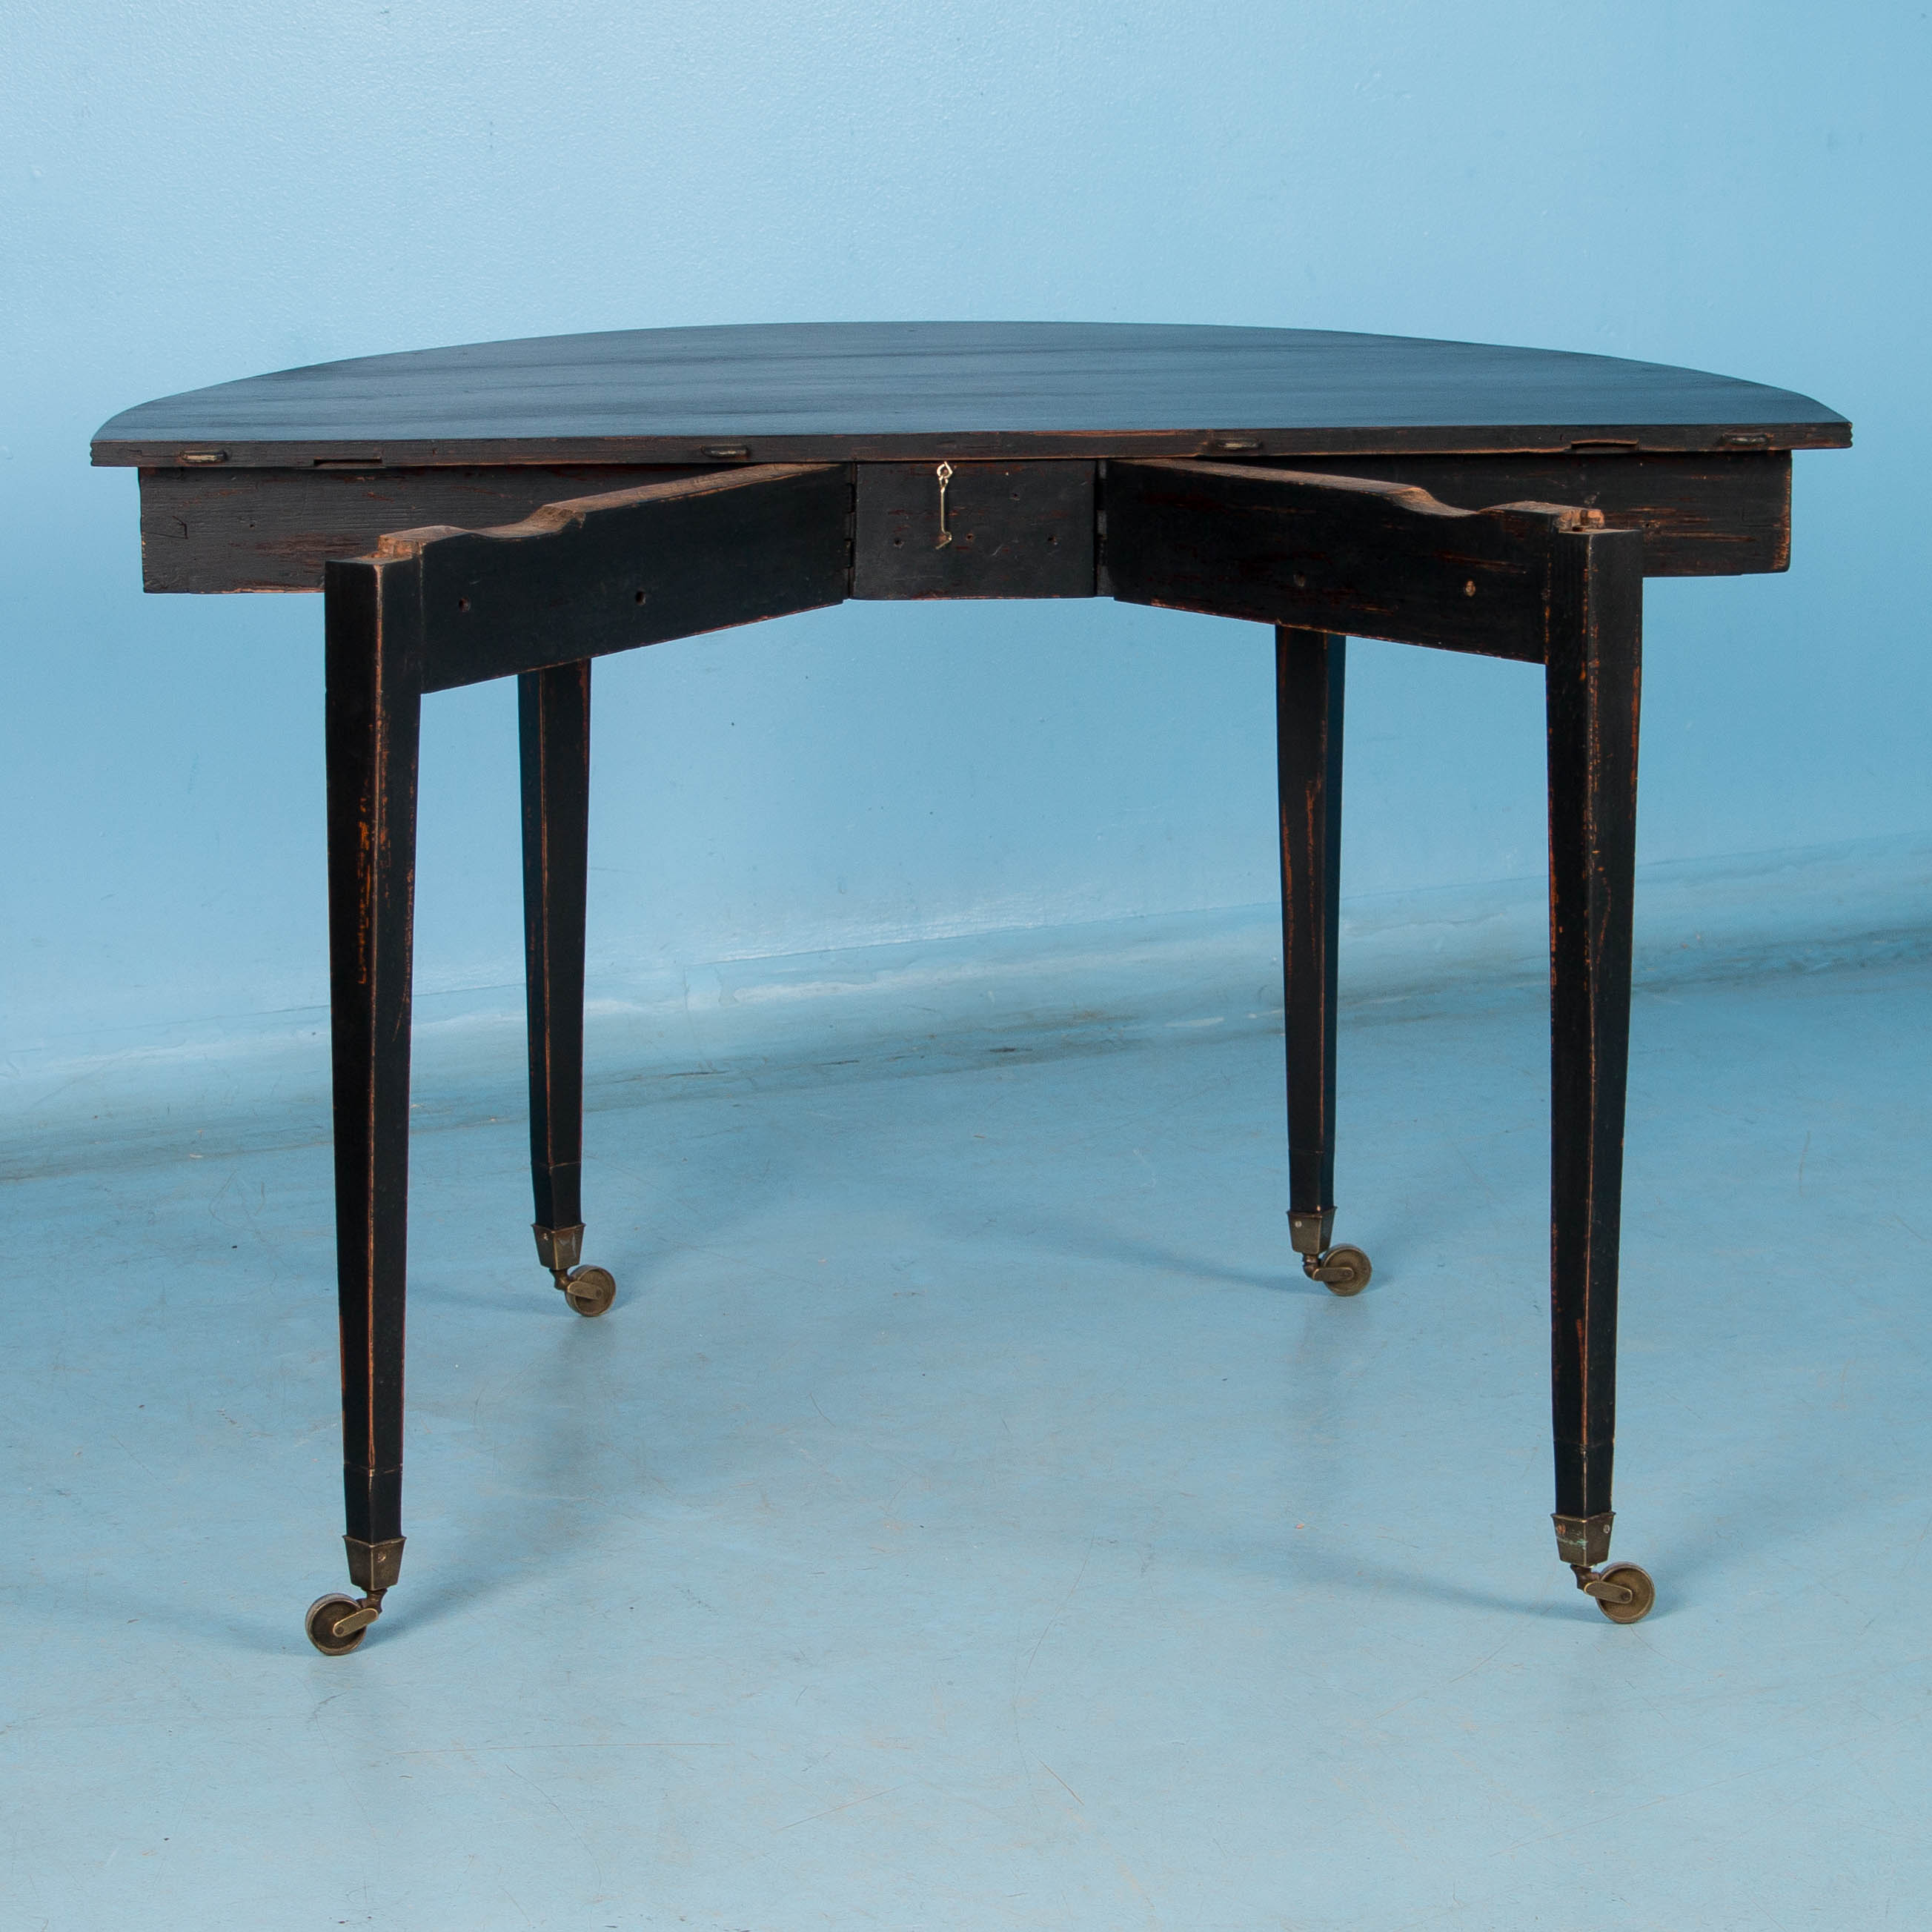 Pair of Black Painted Antique Swedish Demilune Tables | eBay